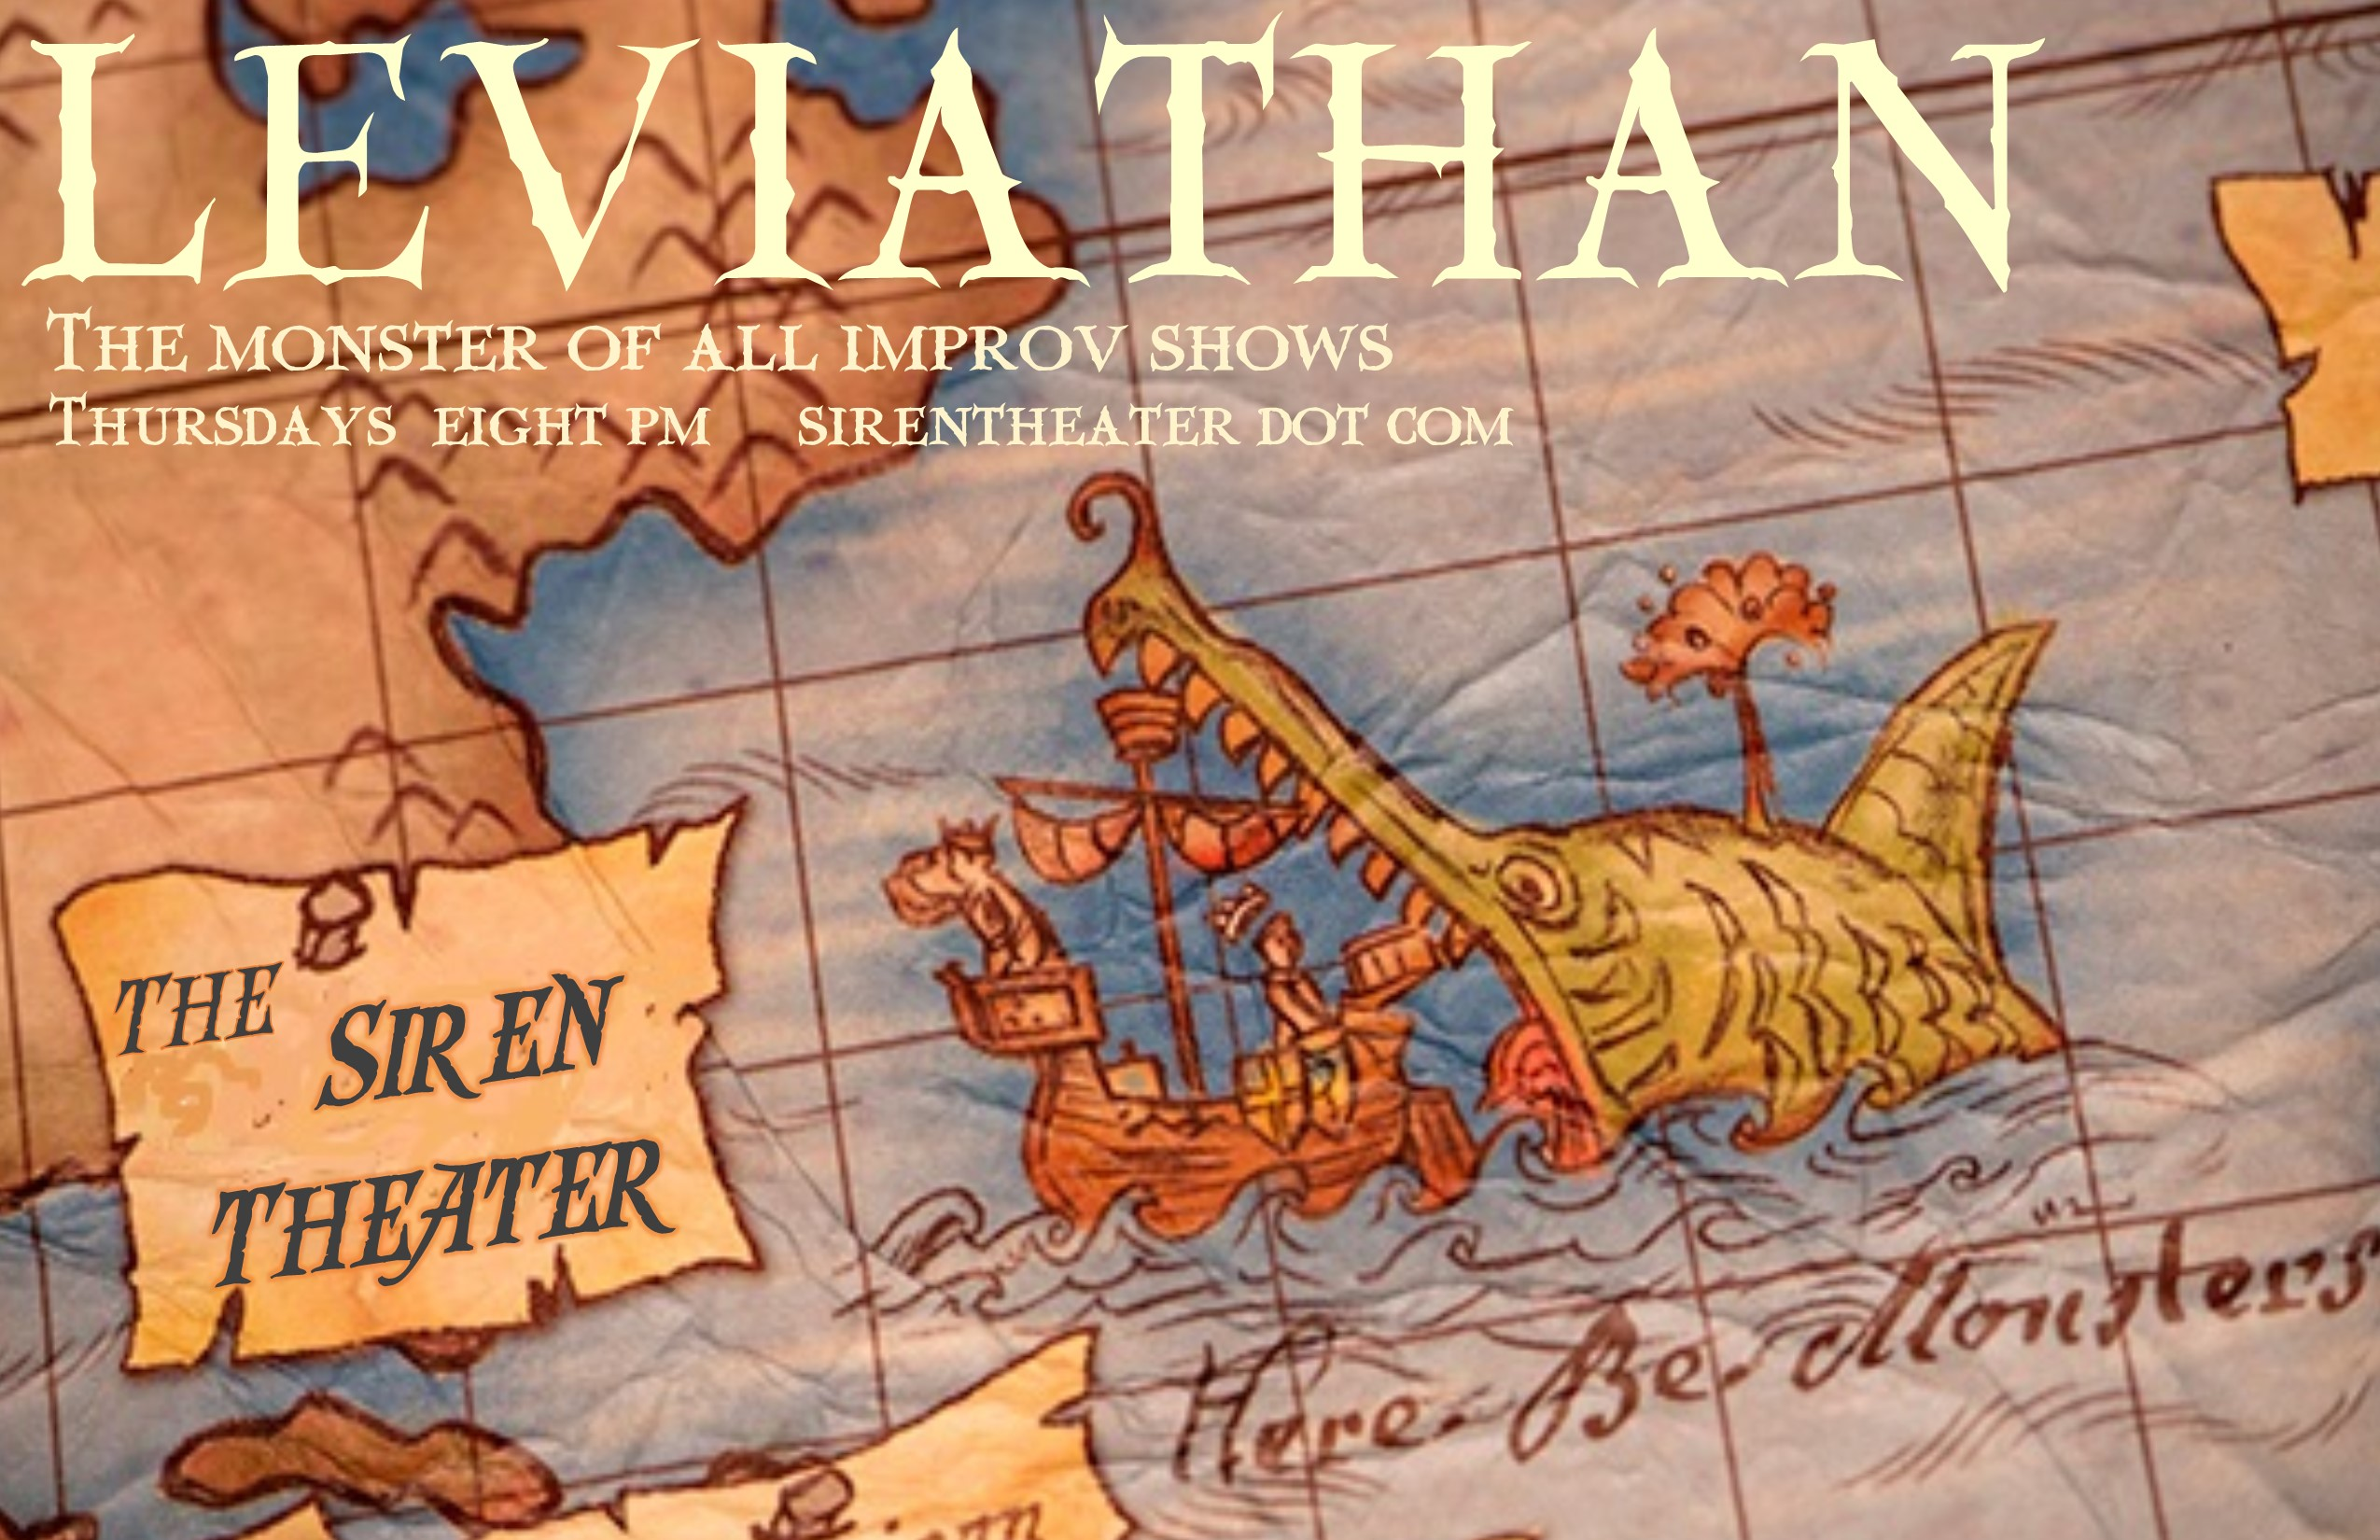 Leviathan at the Siren Theater With guest monologist Michelle